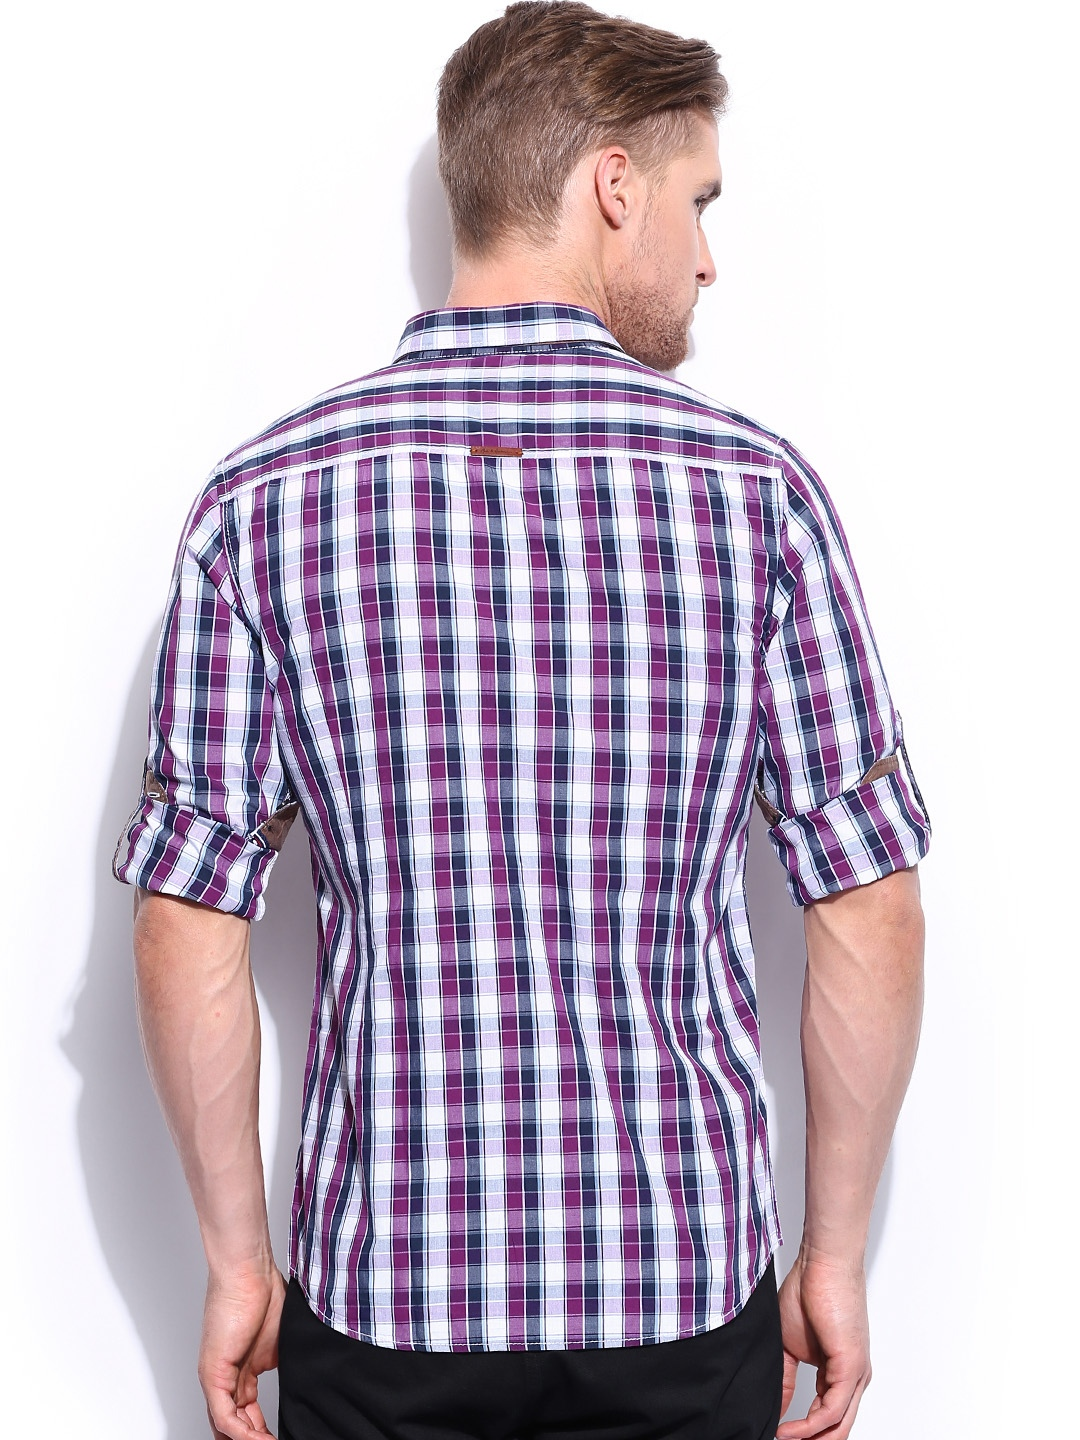 Myntra mast harbour purple white checked casual shirt for Purple and white checked shirt